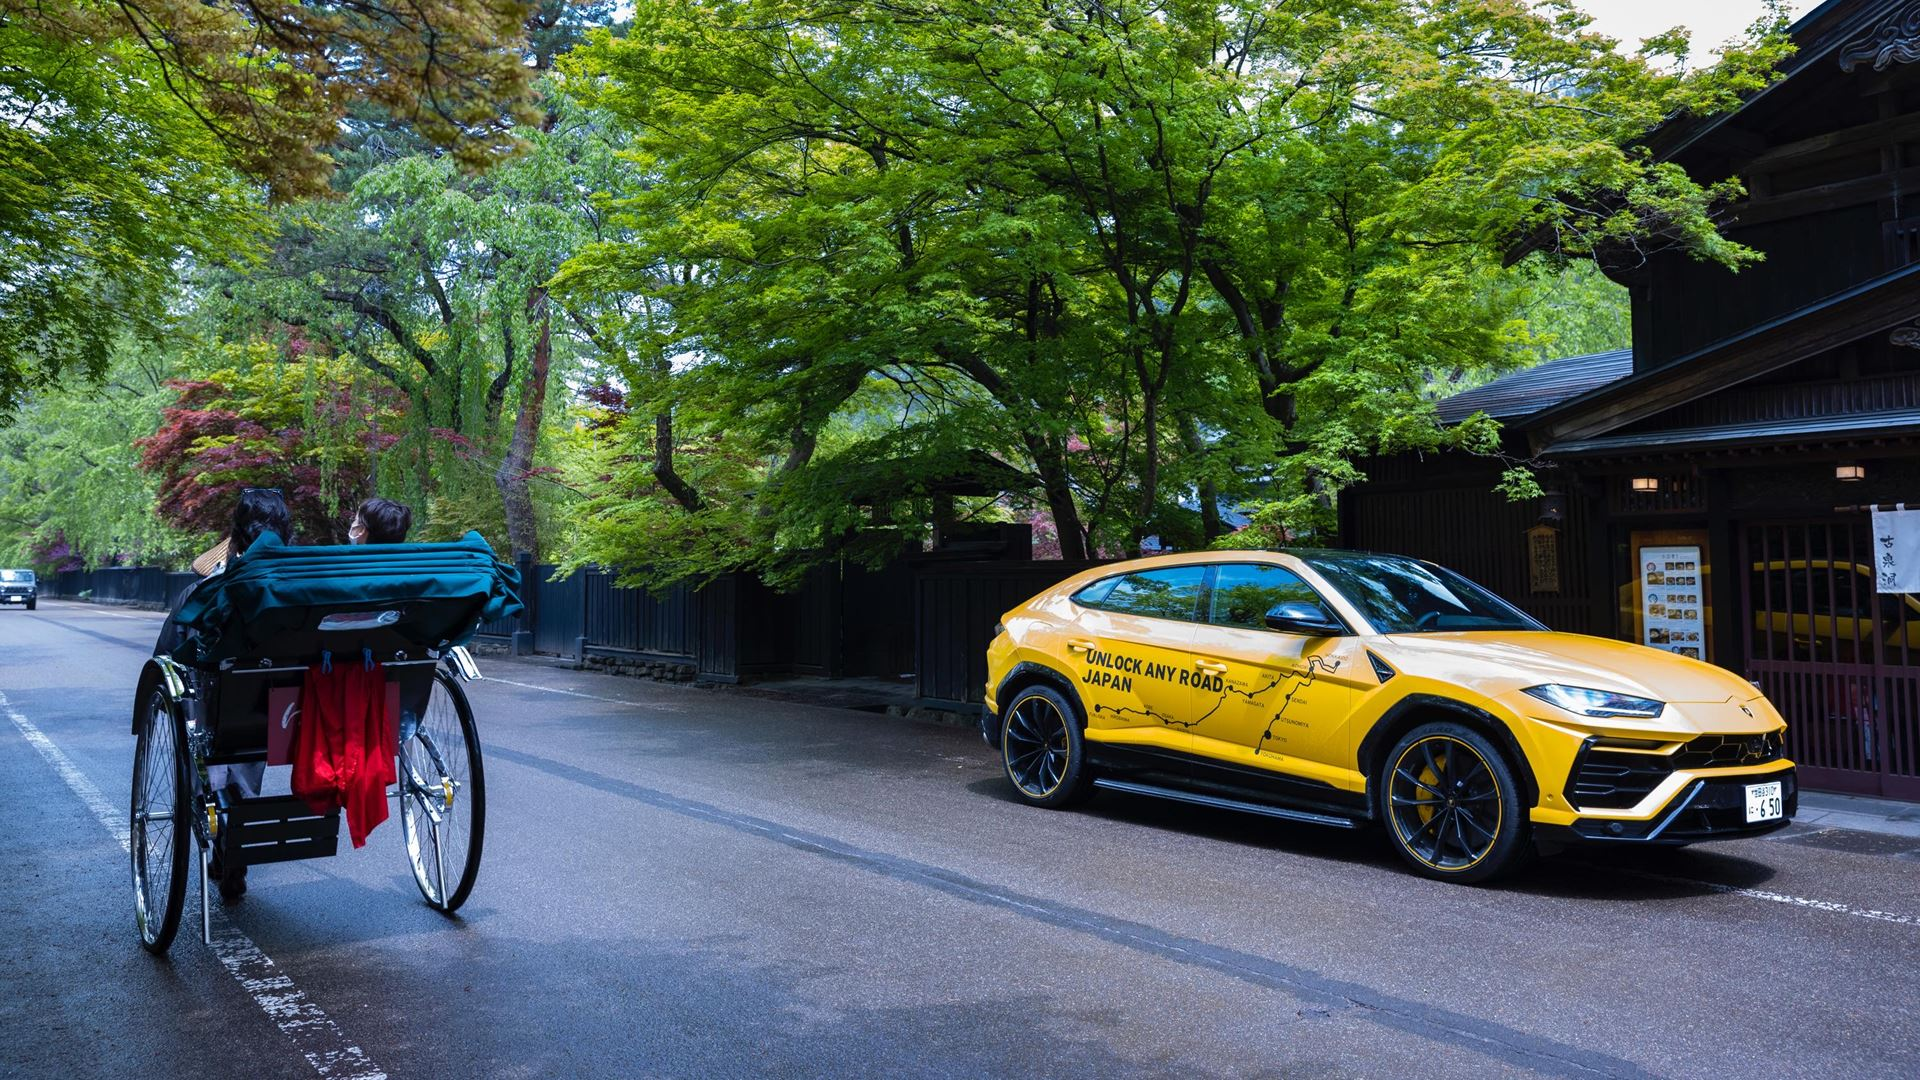 """""""UNLOCK ANY ROAD JAPAN"""" Urus expedition over 6.500 Km across Japan - Image 1"""